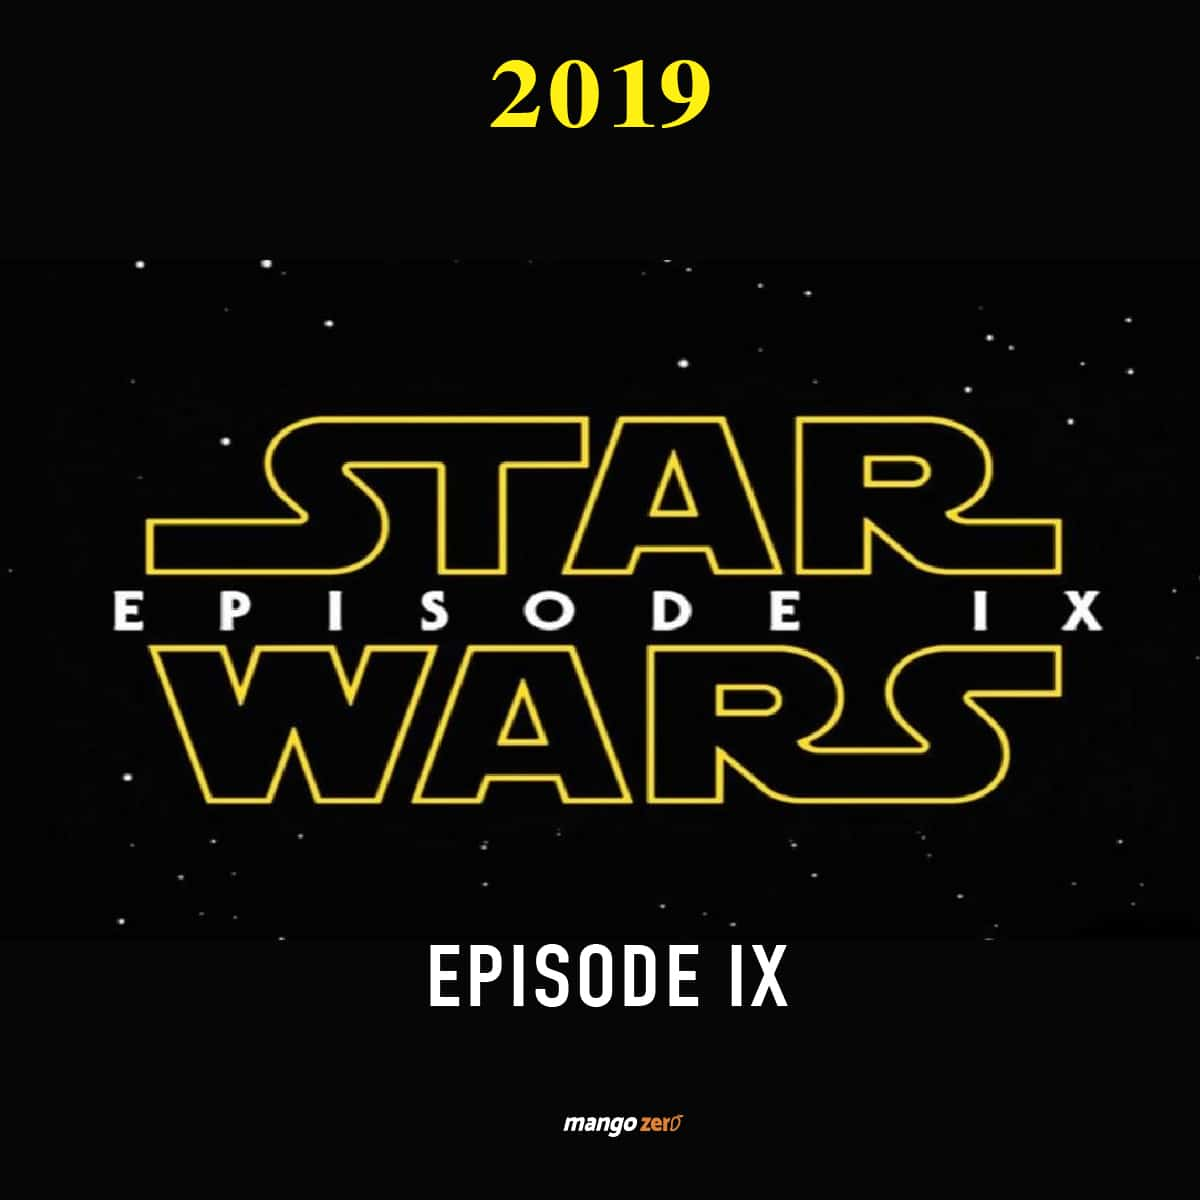 upcoming-star-wars-movie-04